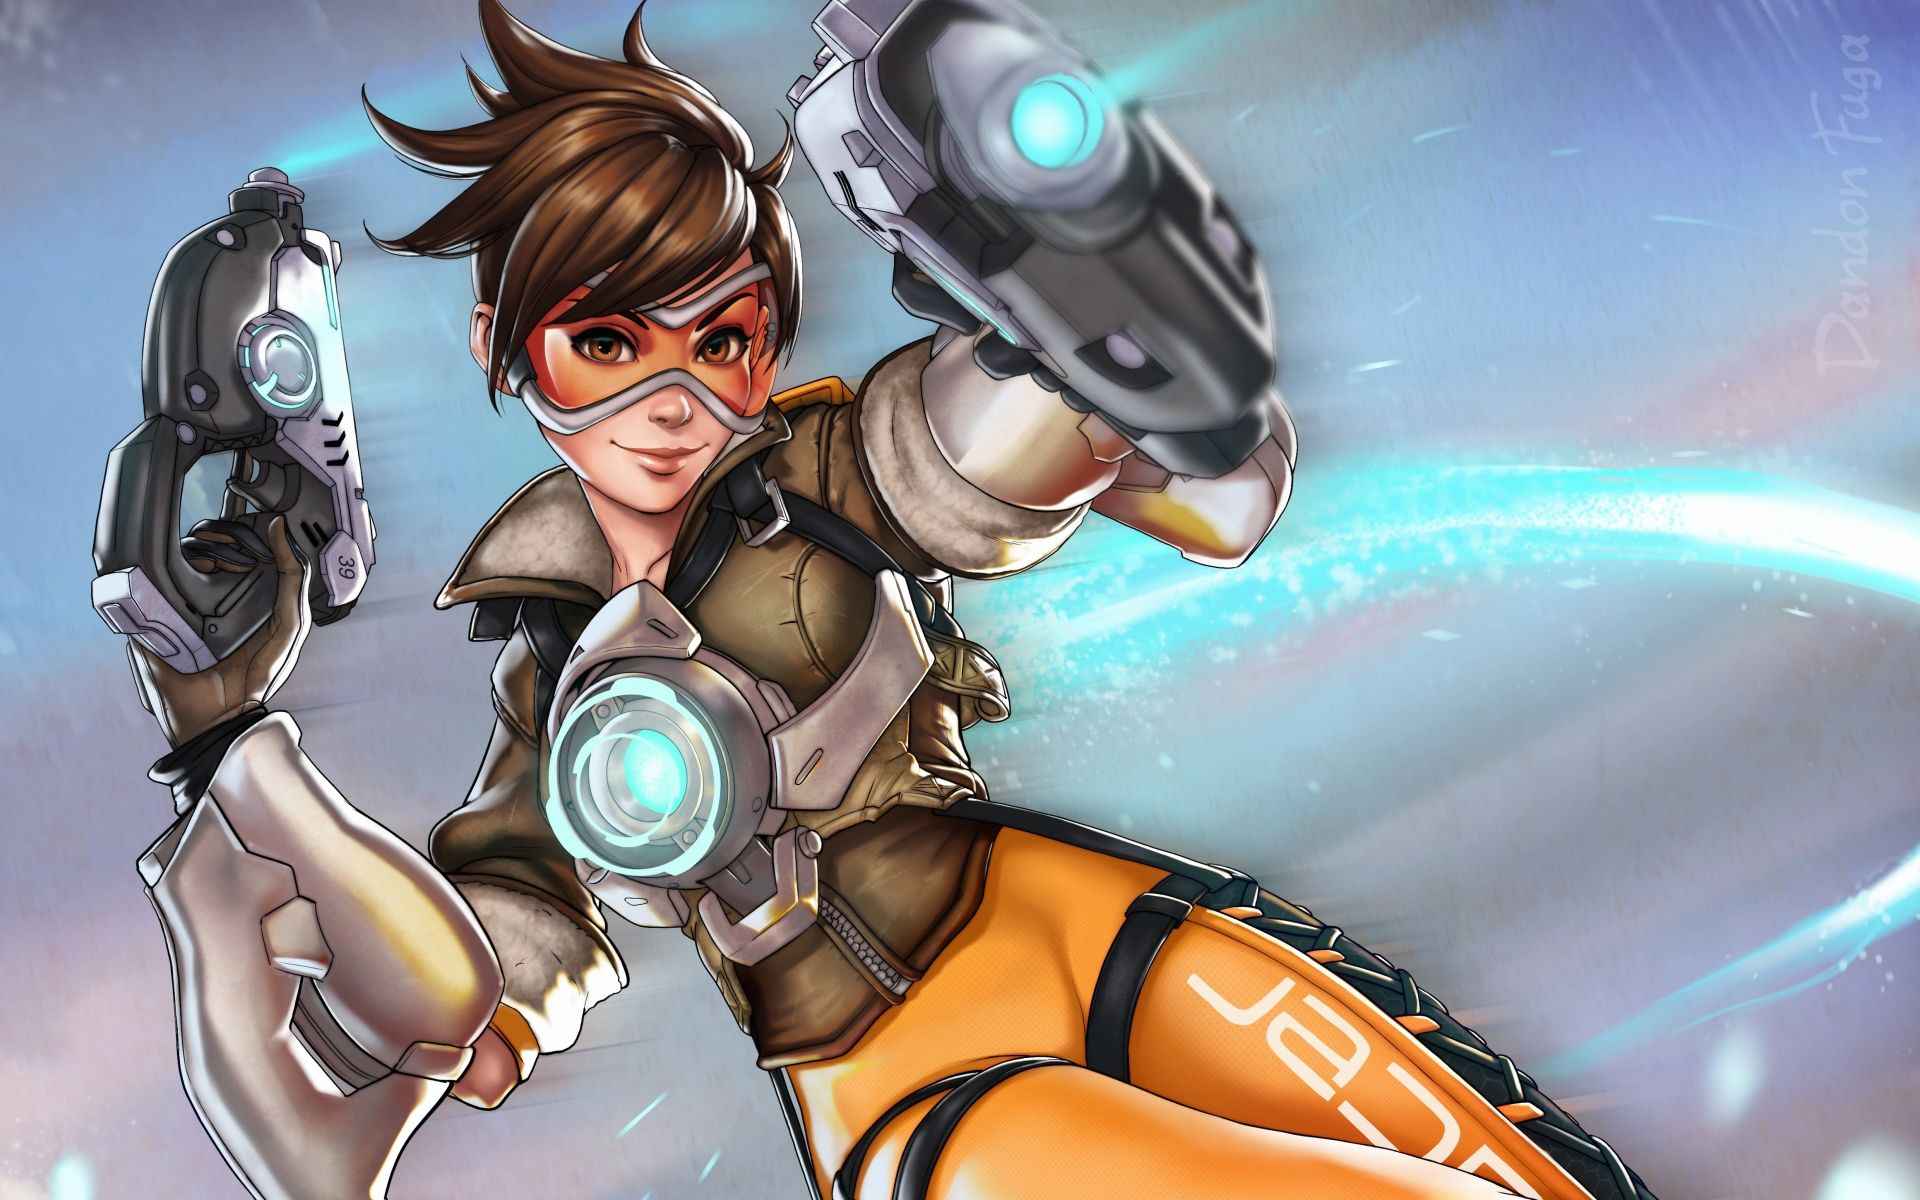 Pin On Hd Overwatch Wallpapers